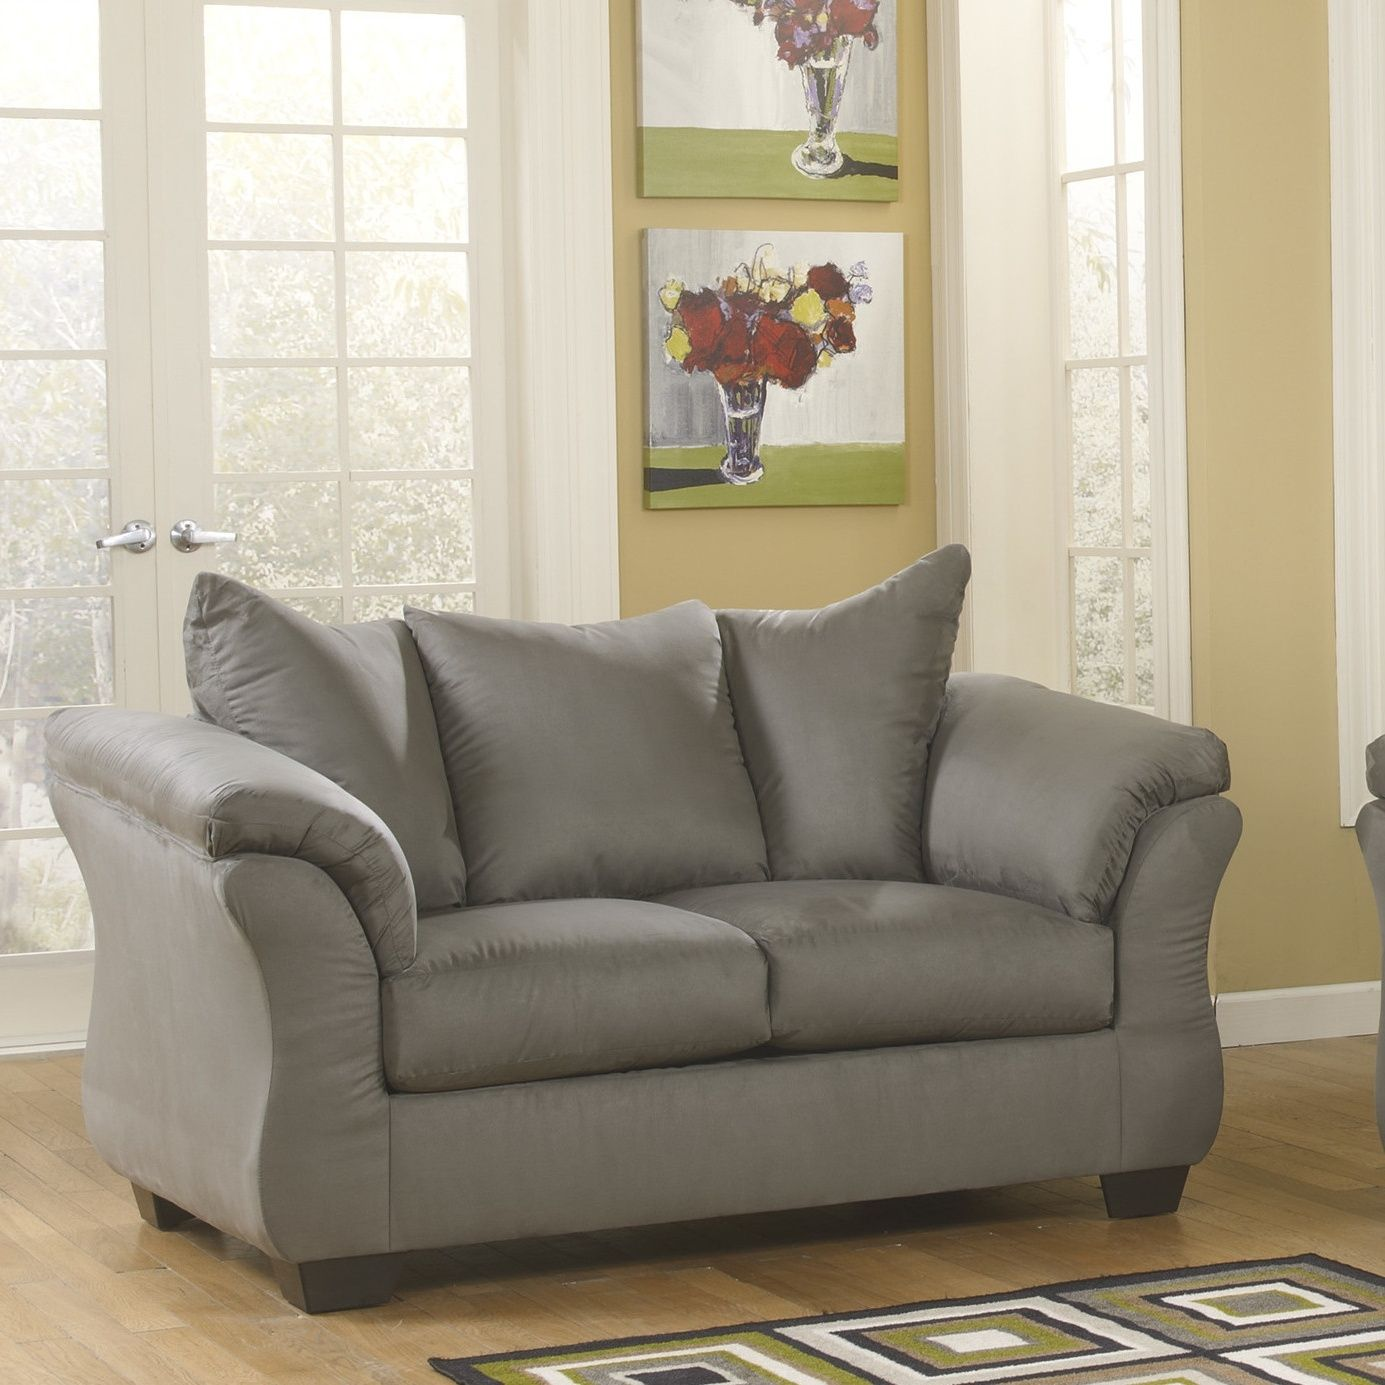 Cheap Couches For Sale Under 100 Love Seat Sofa And Loveseat Set Cheap Couch